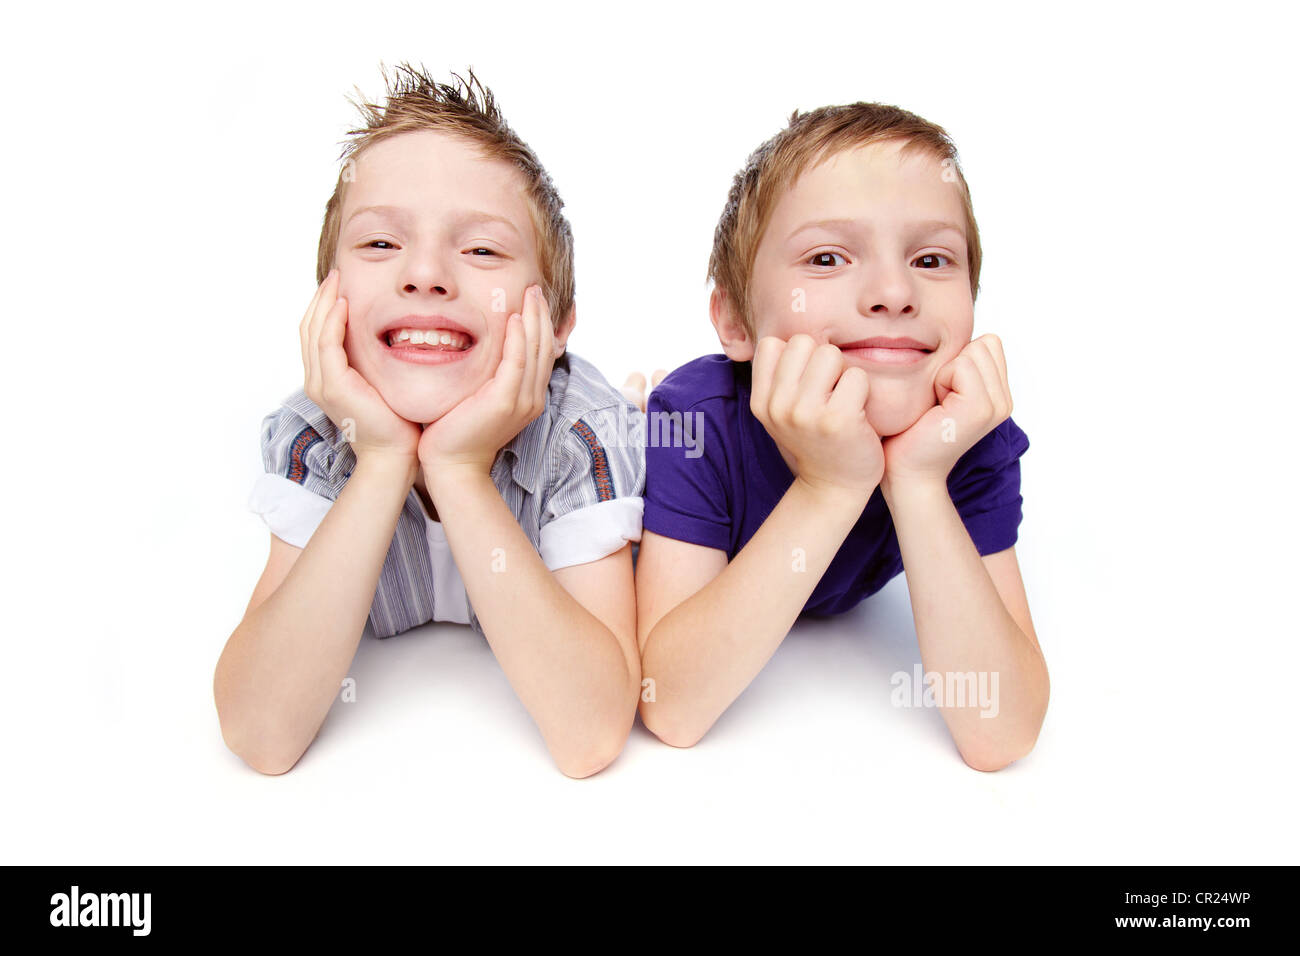 Cheerful brothers lying together, isolated against white background - Stock Image